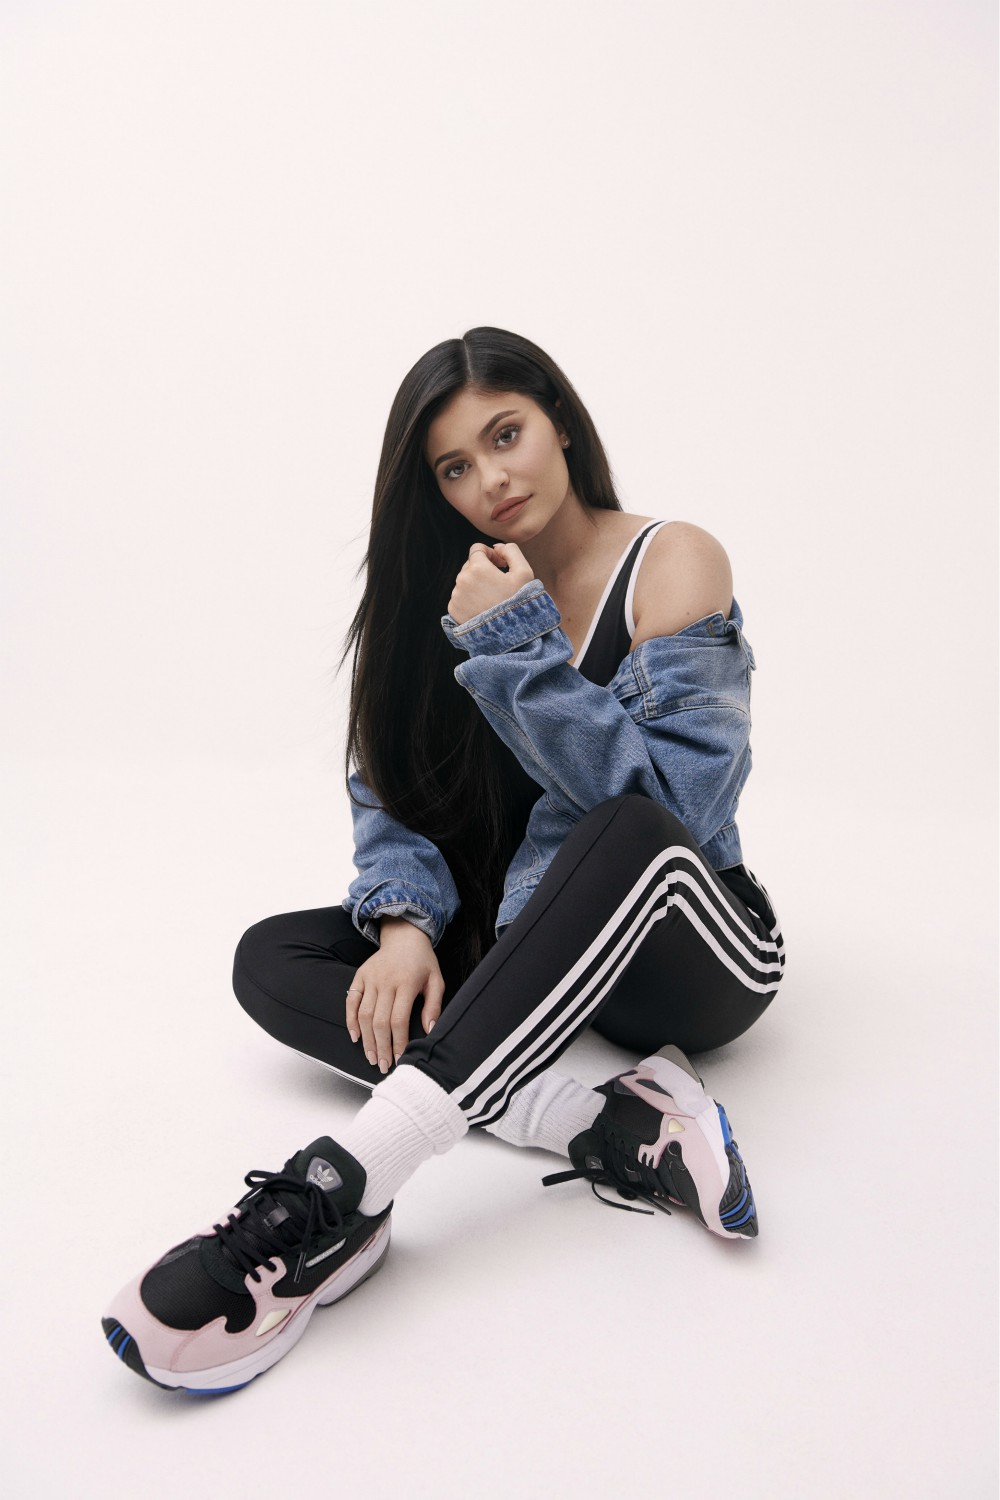 Kylie Jenner and the Adidas Originals Falcon both were born in the same year.